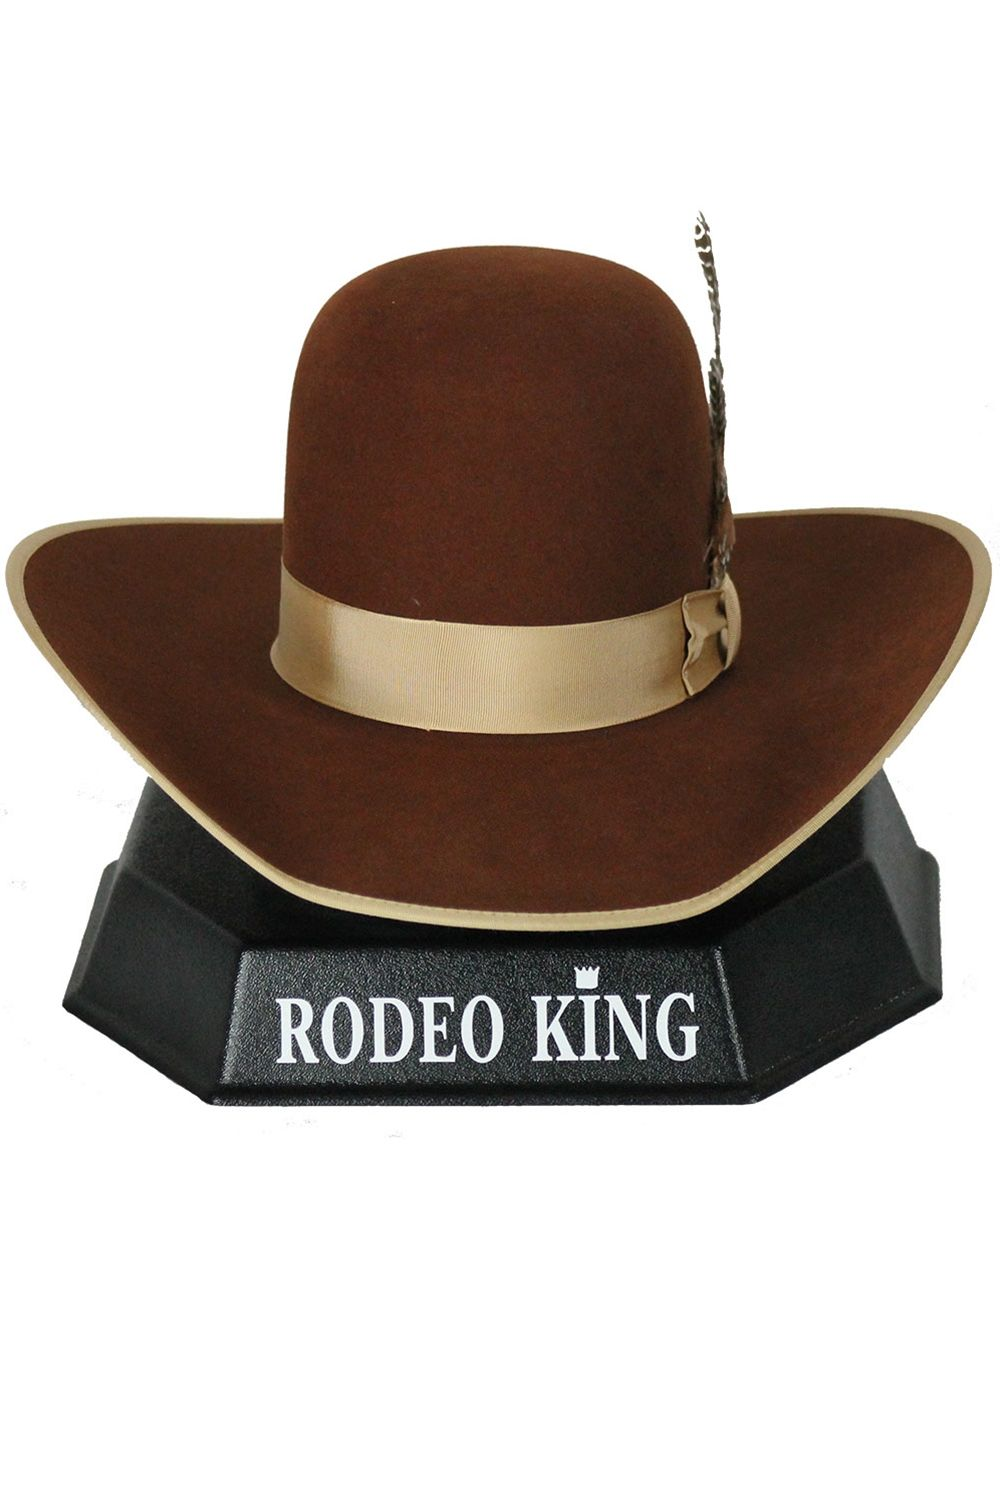 9d516052555 Rodeo King 7X Open Crown Rust Hat Western Hats